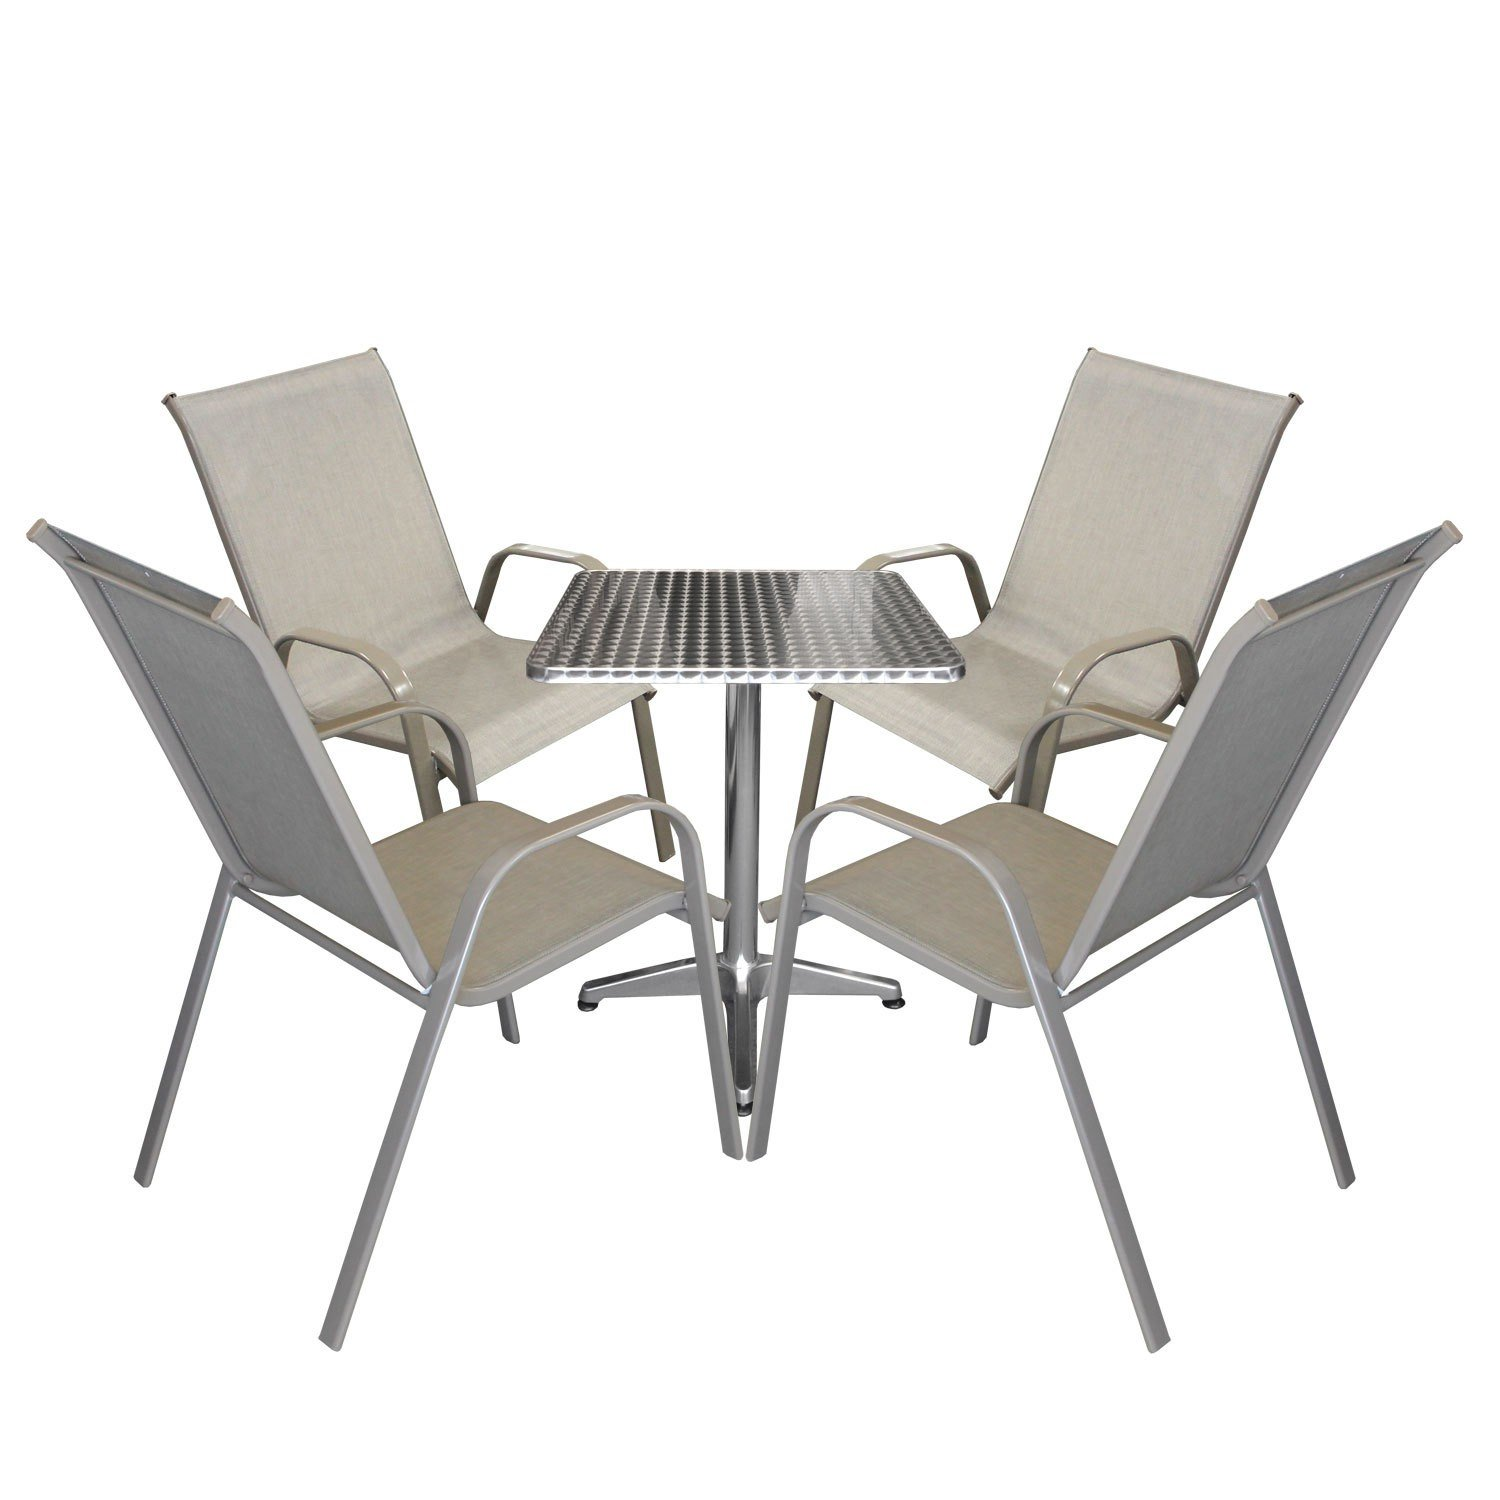 5tlg bistrogarnitur bistro set balkonm bel aluminium. Black Bedroom Furniture Sets. Home Design Ideas